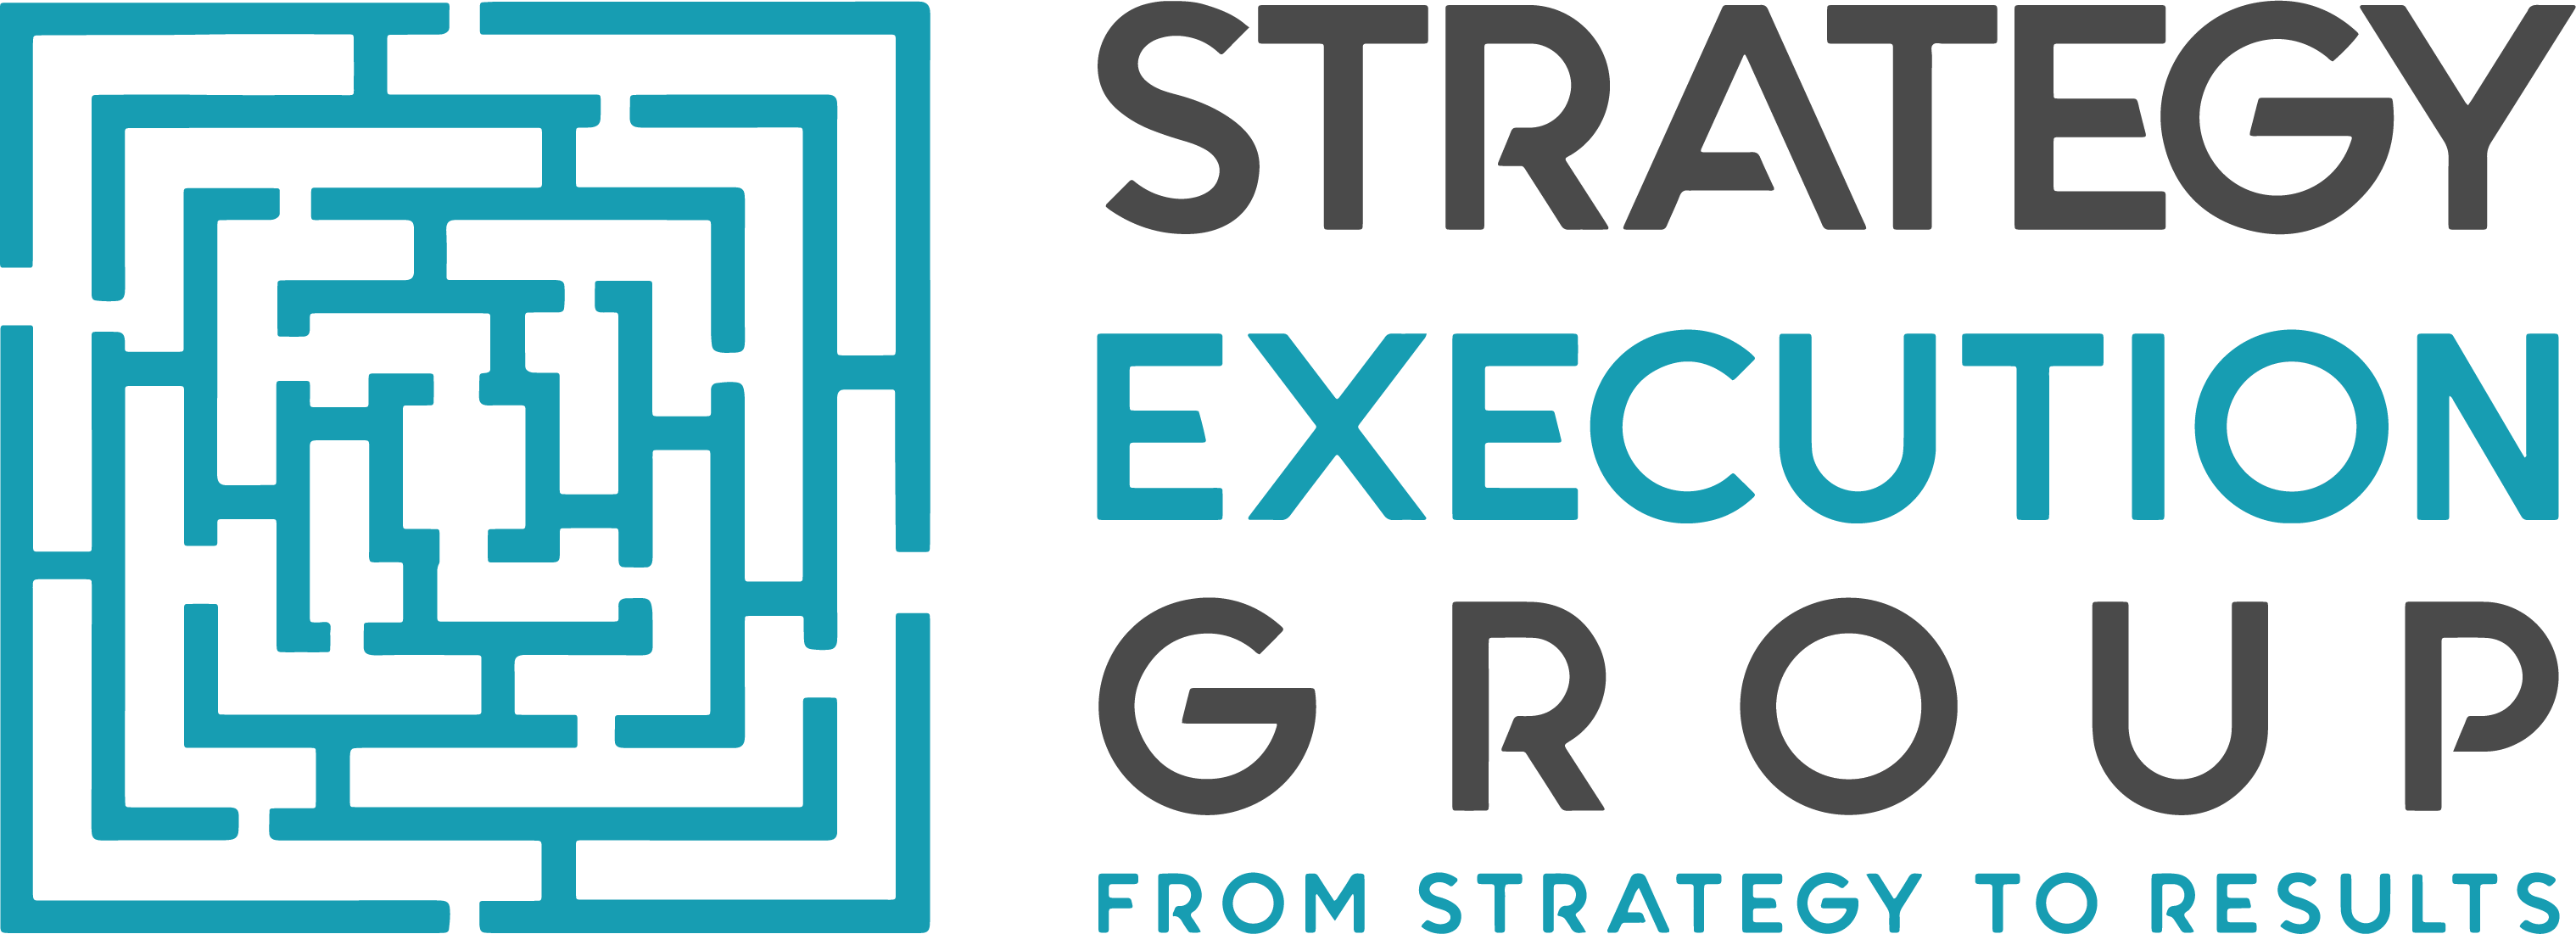 Strategy Execution | Organisational Development | Leadership Development | Team Development | Team Coaching